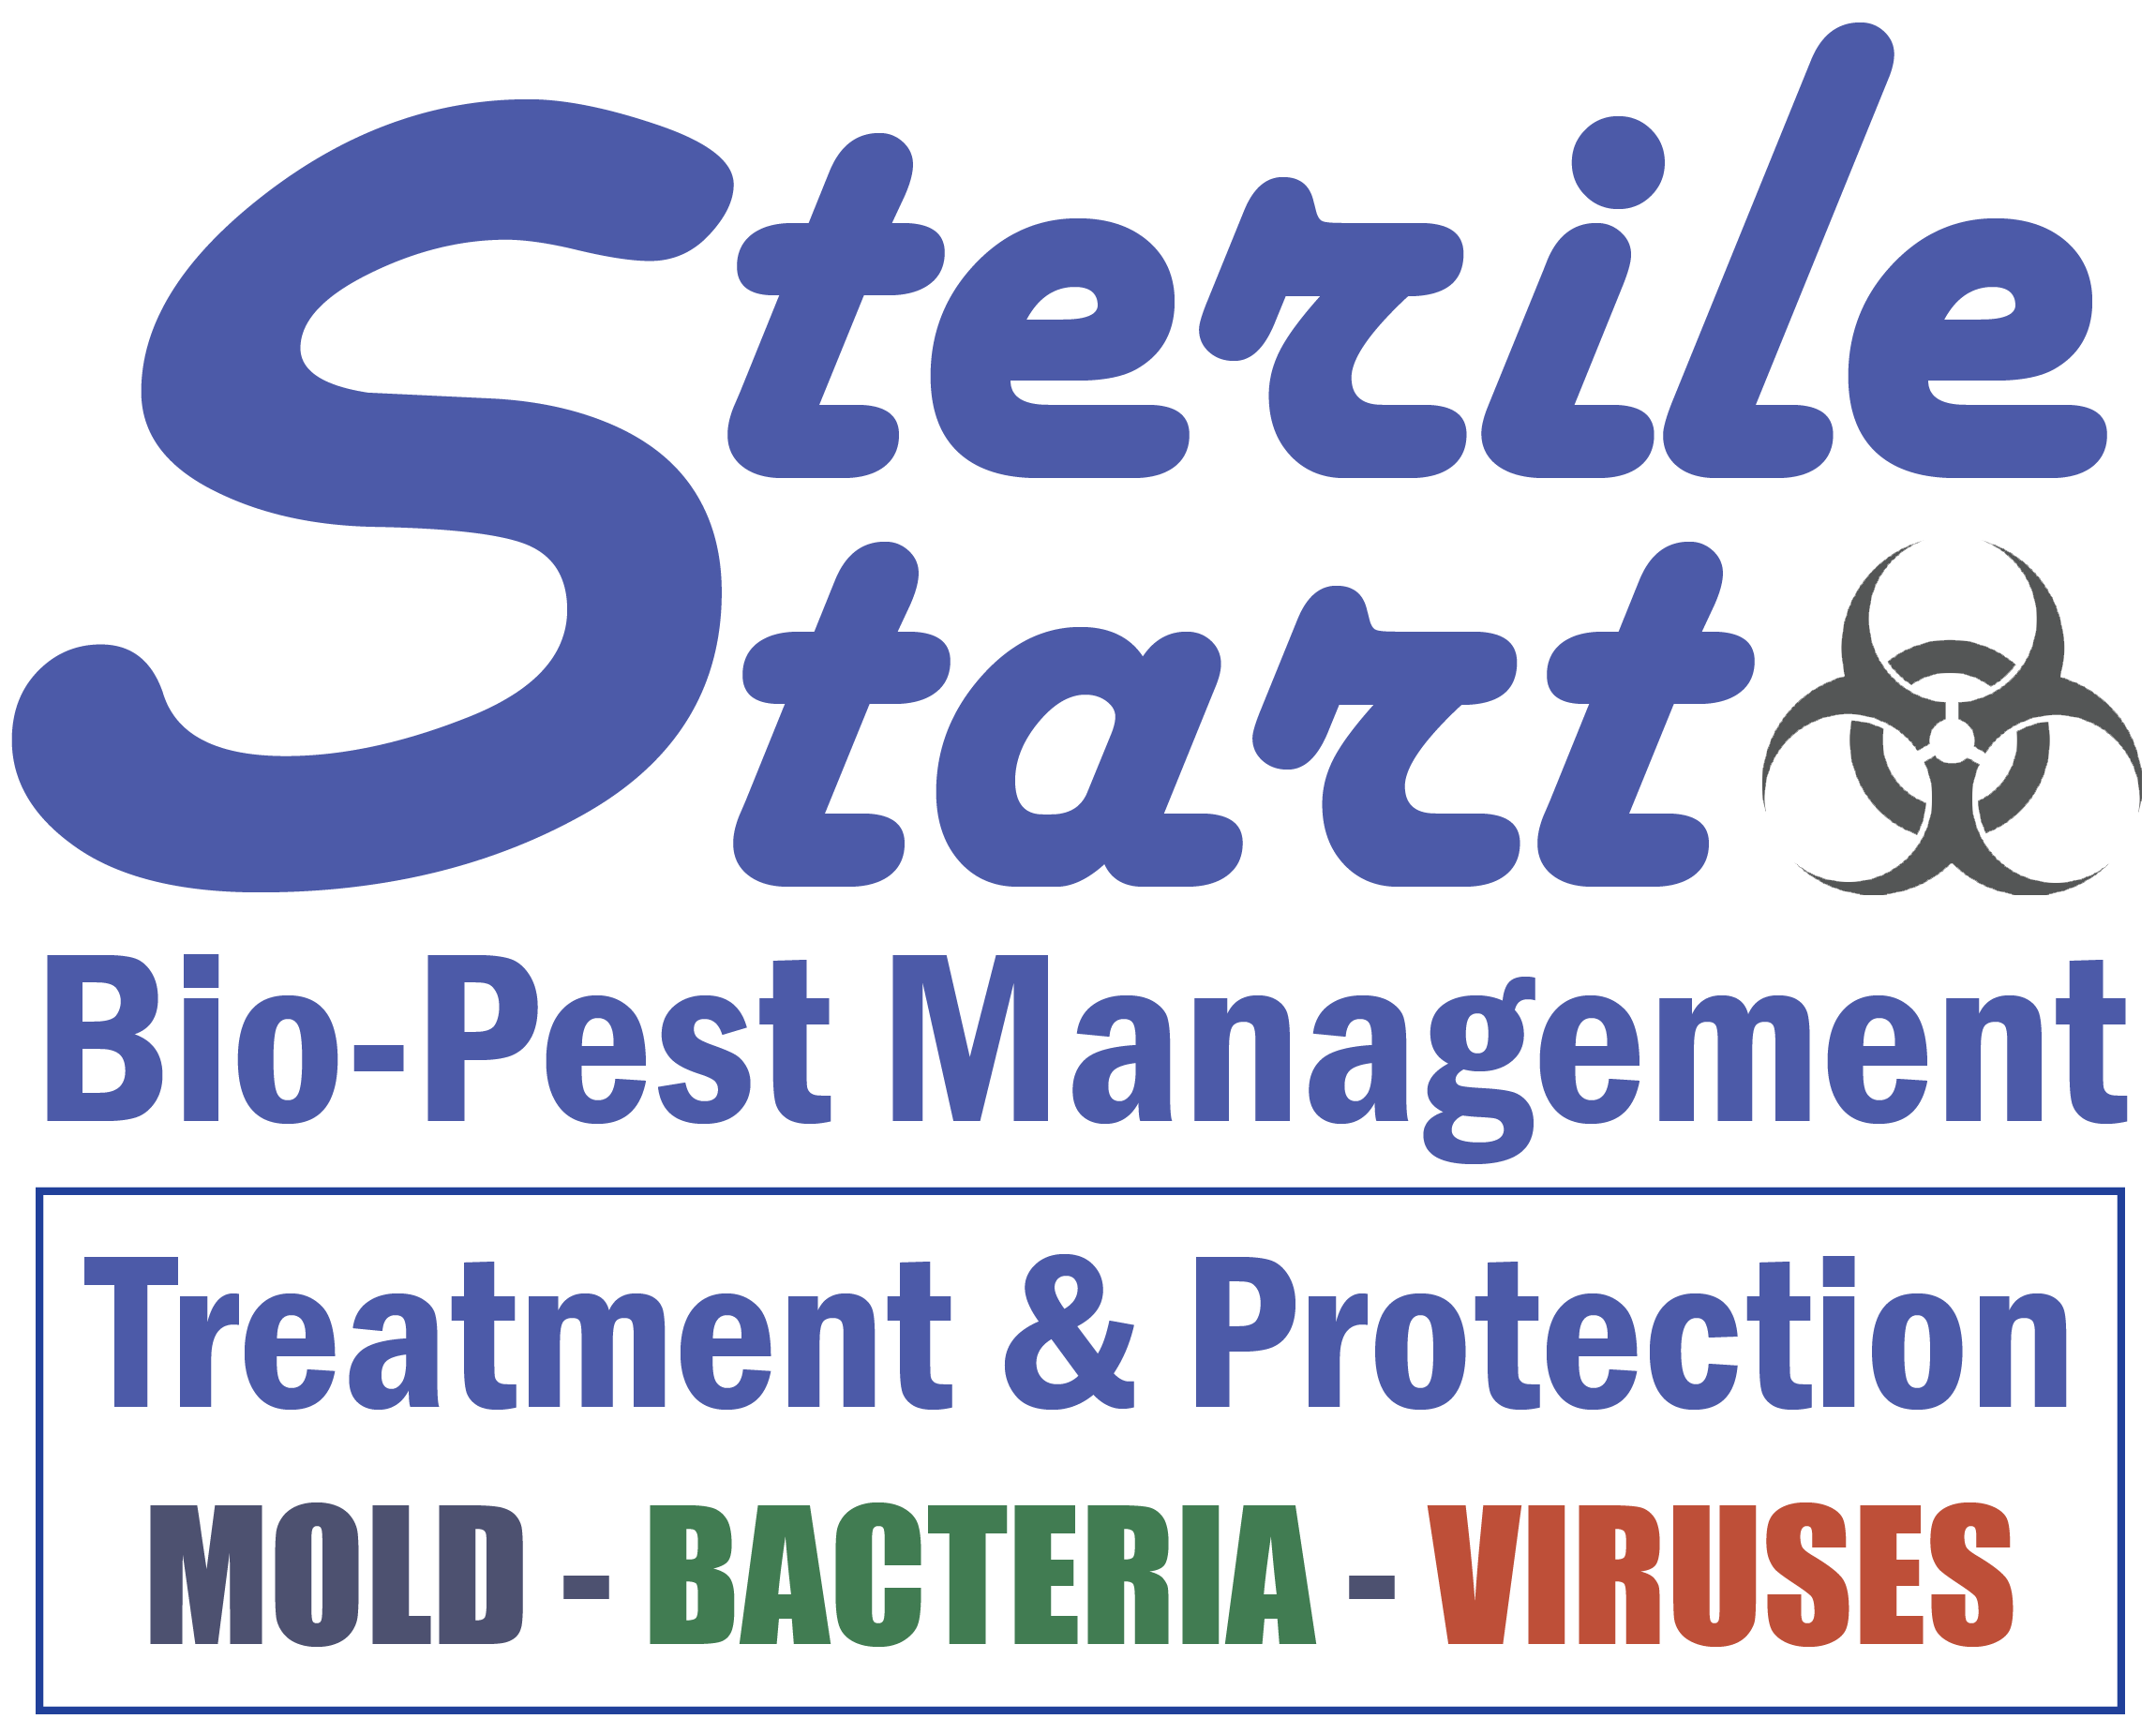 SterileStart Charleston Bio-pest Management